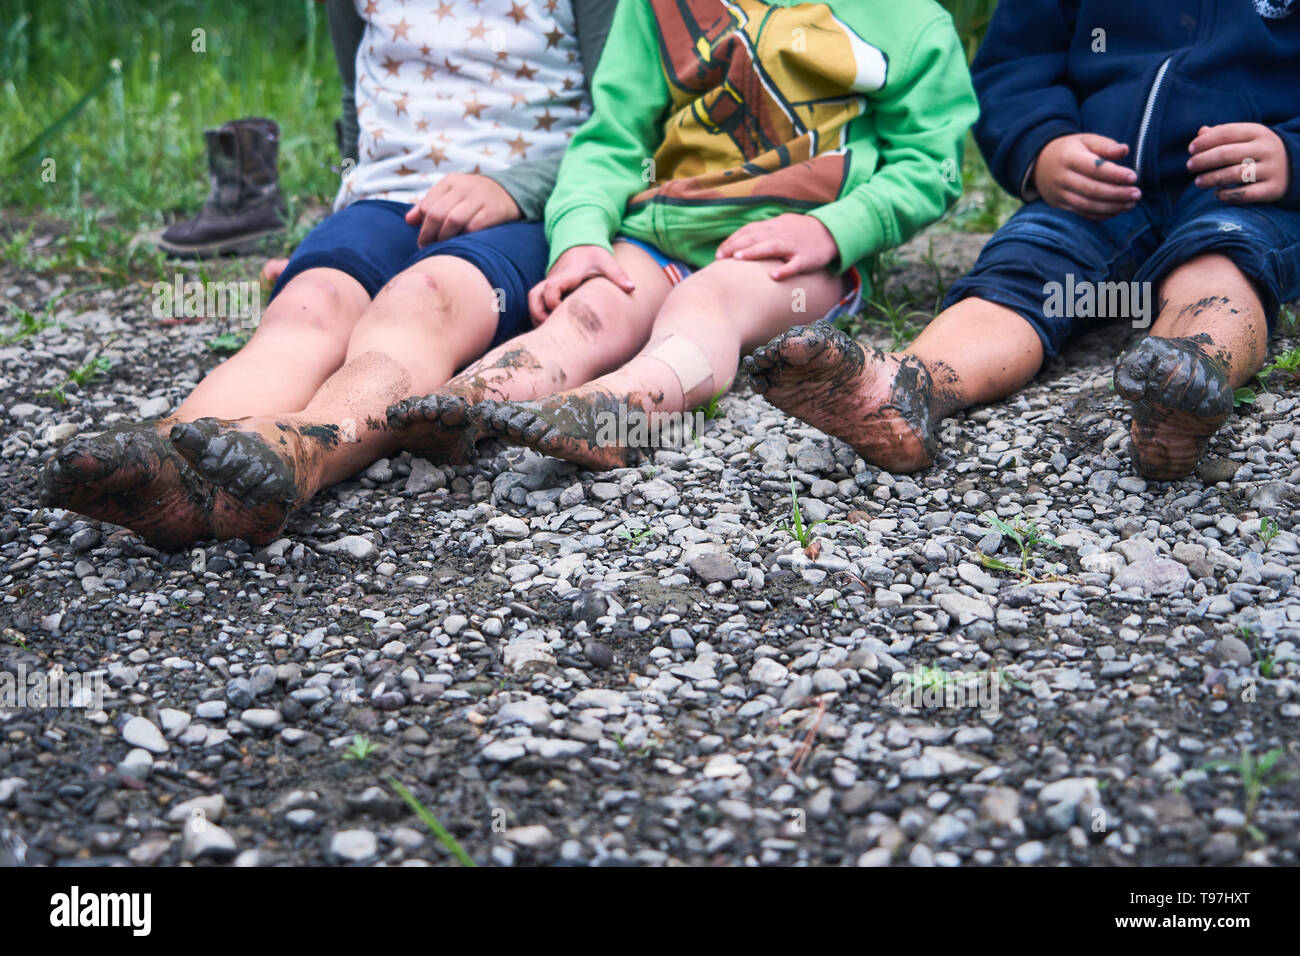 Three kids with bare and muddy feet sit on a pebble beach at the Russian River near Duncans Mills, California. - Stock Image